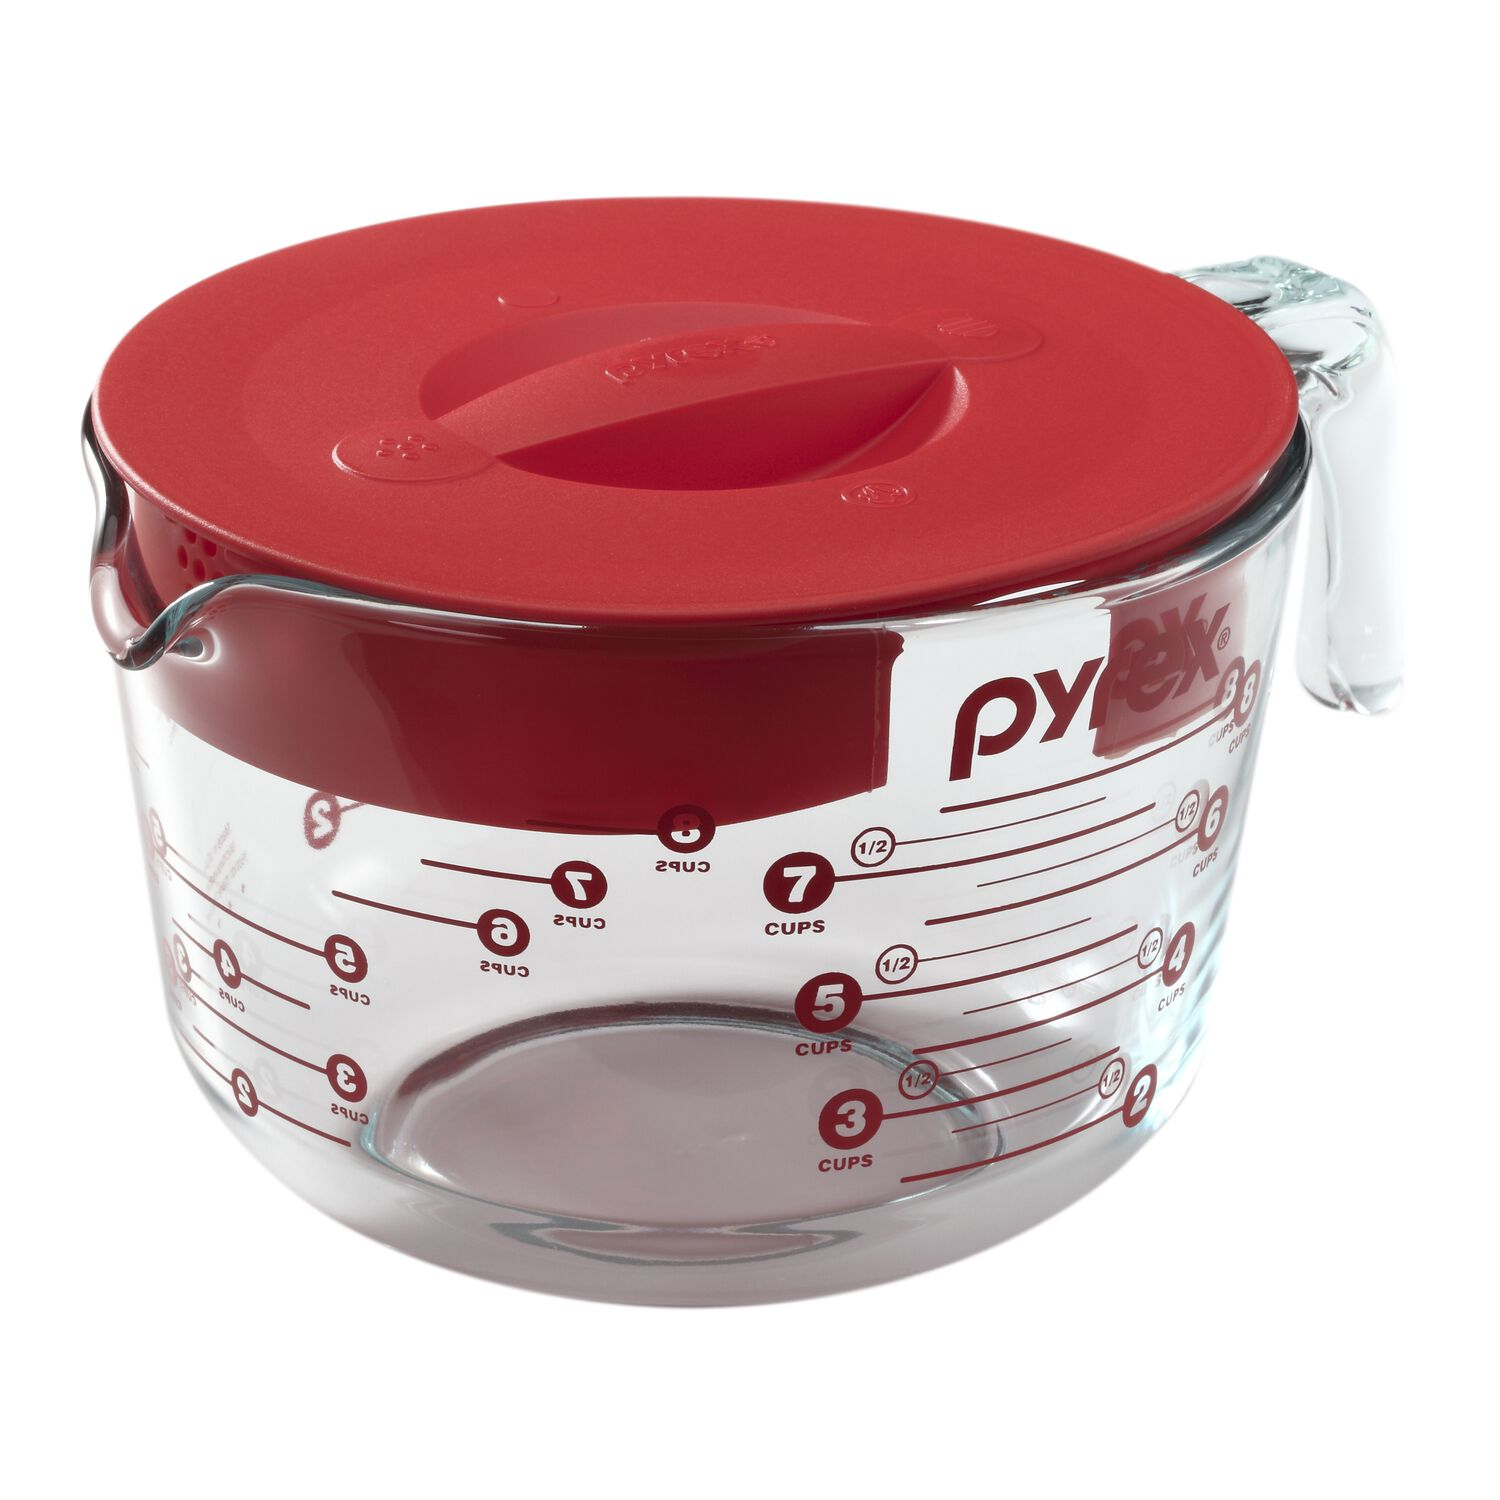 Pyrex 174 8 Cup Measuring Cup W Red Lid Pyrex